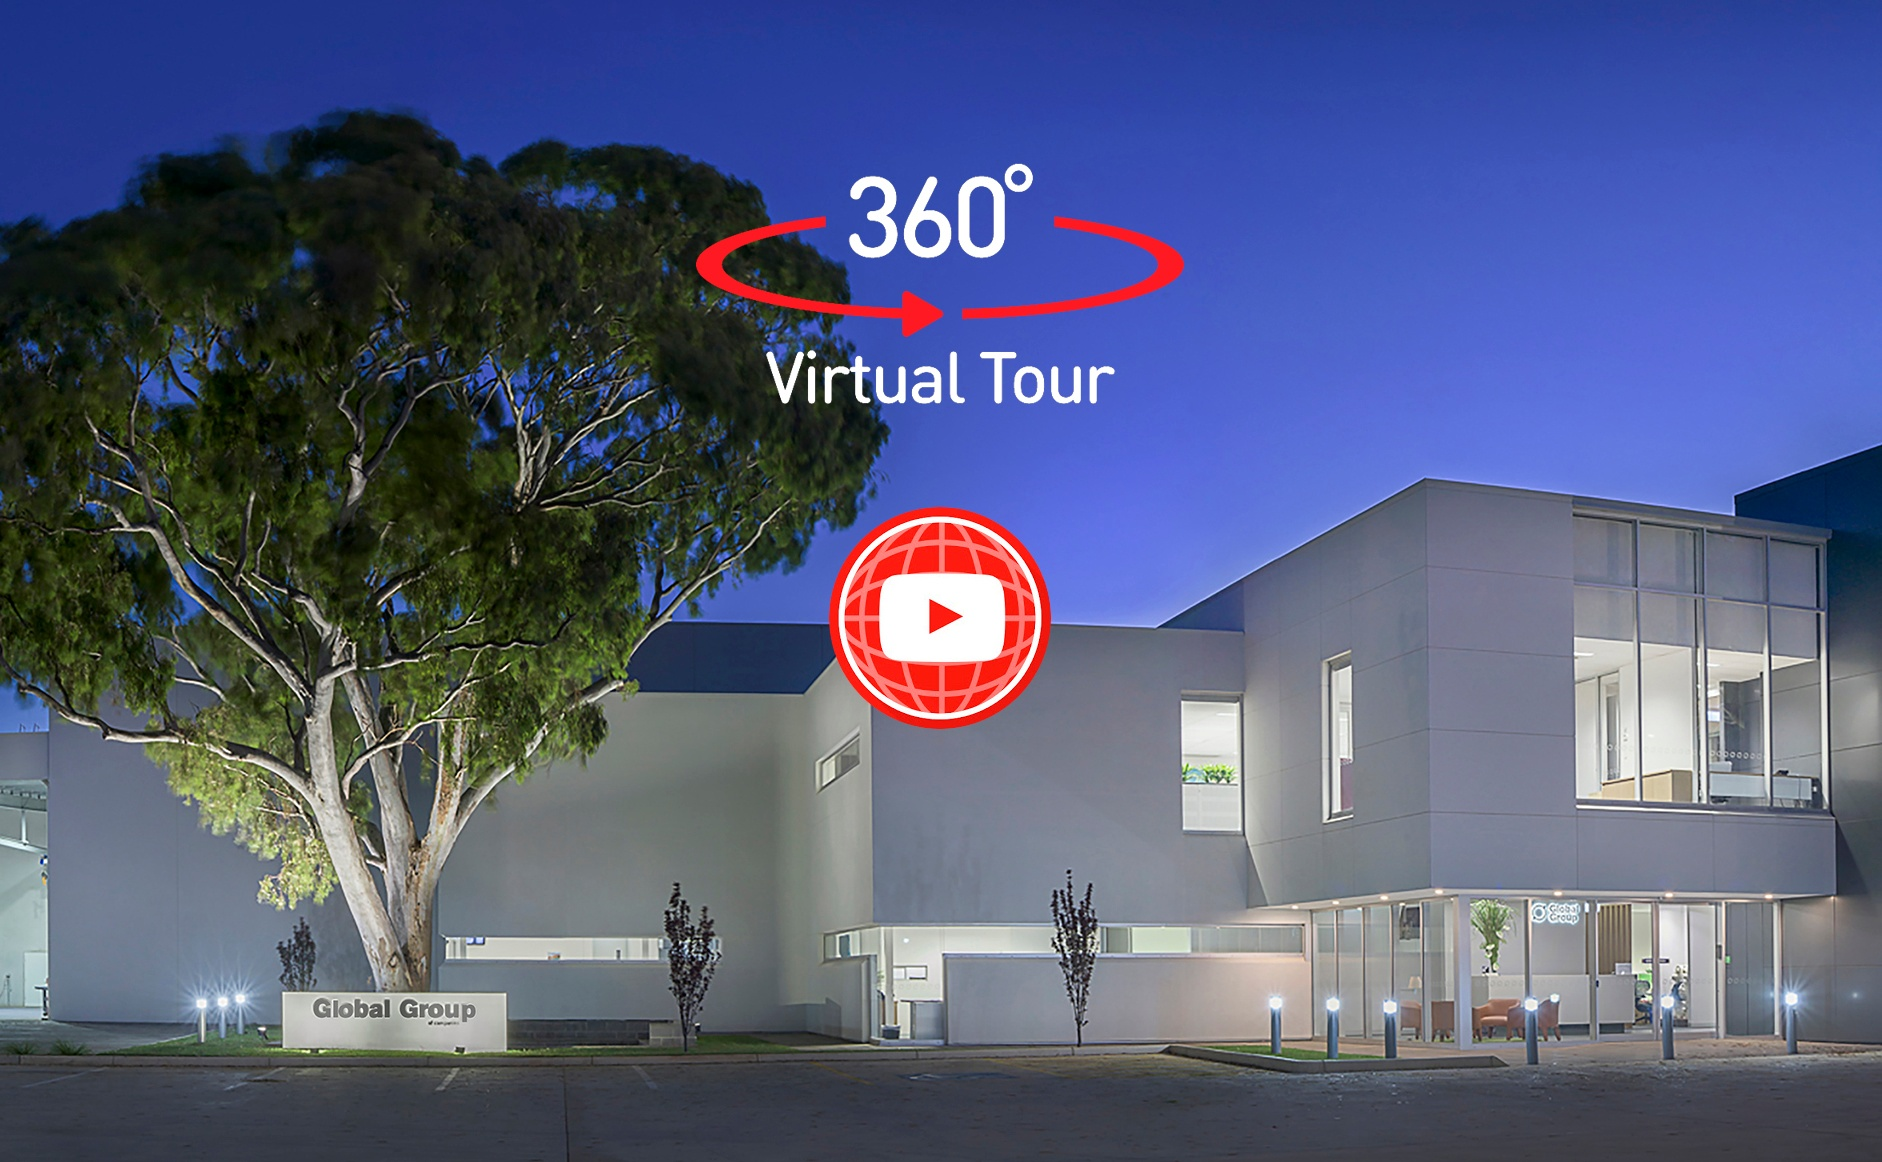 Global Group building virtual tour crop.jpg